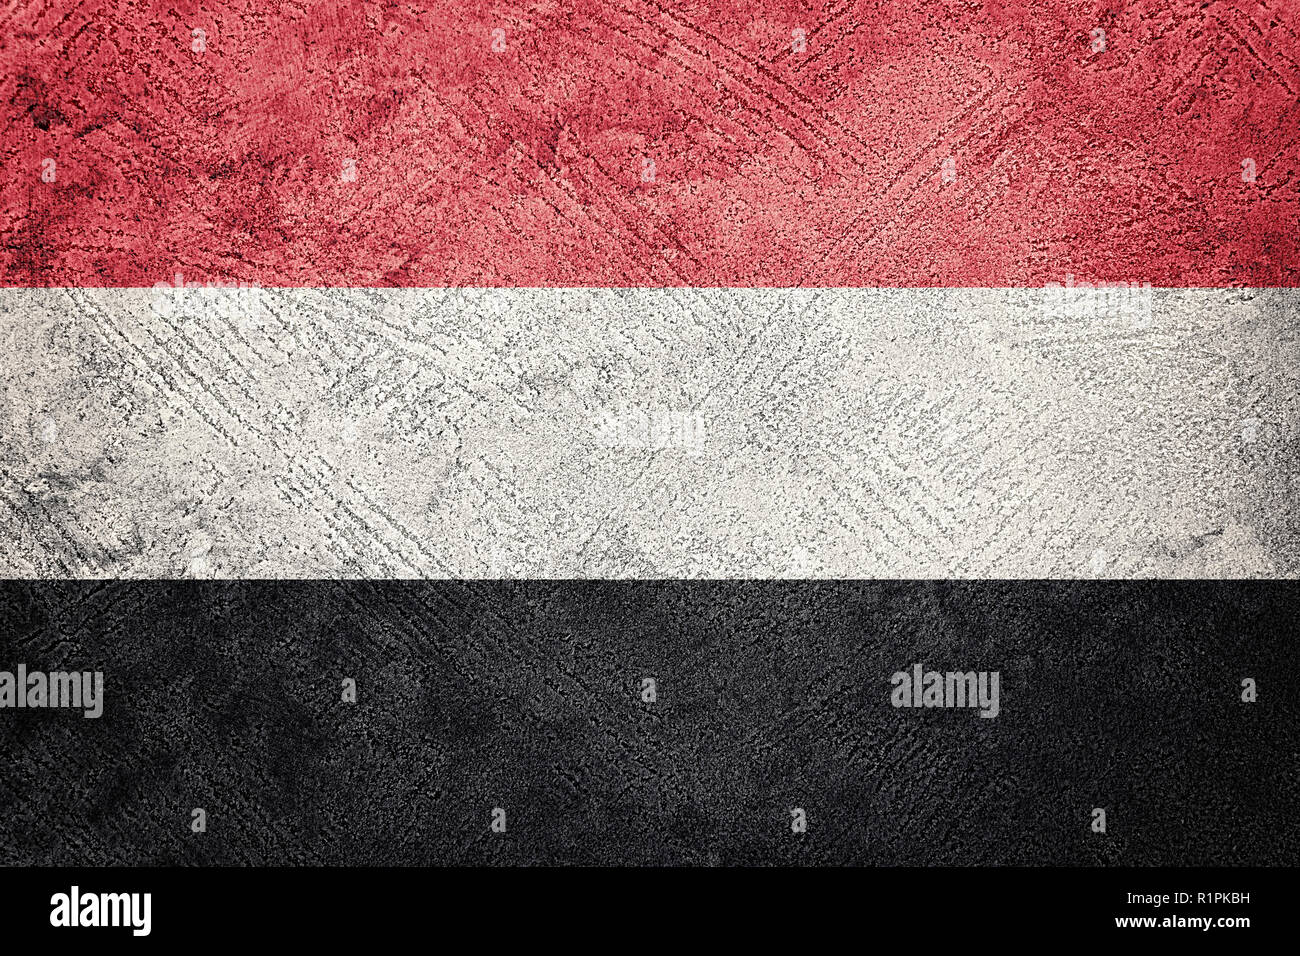 Grunge Yemen flag. Yemen flag with grunge texture. Stock Photo